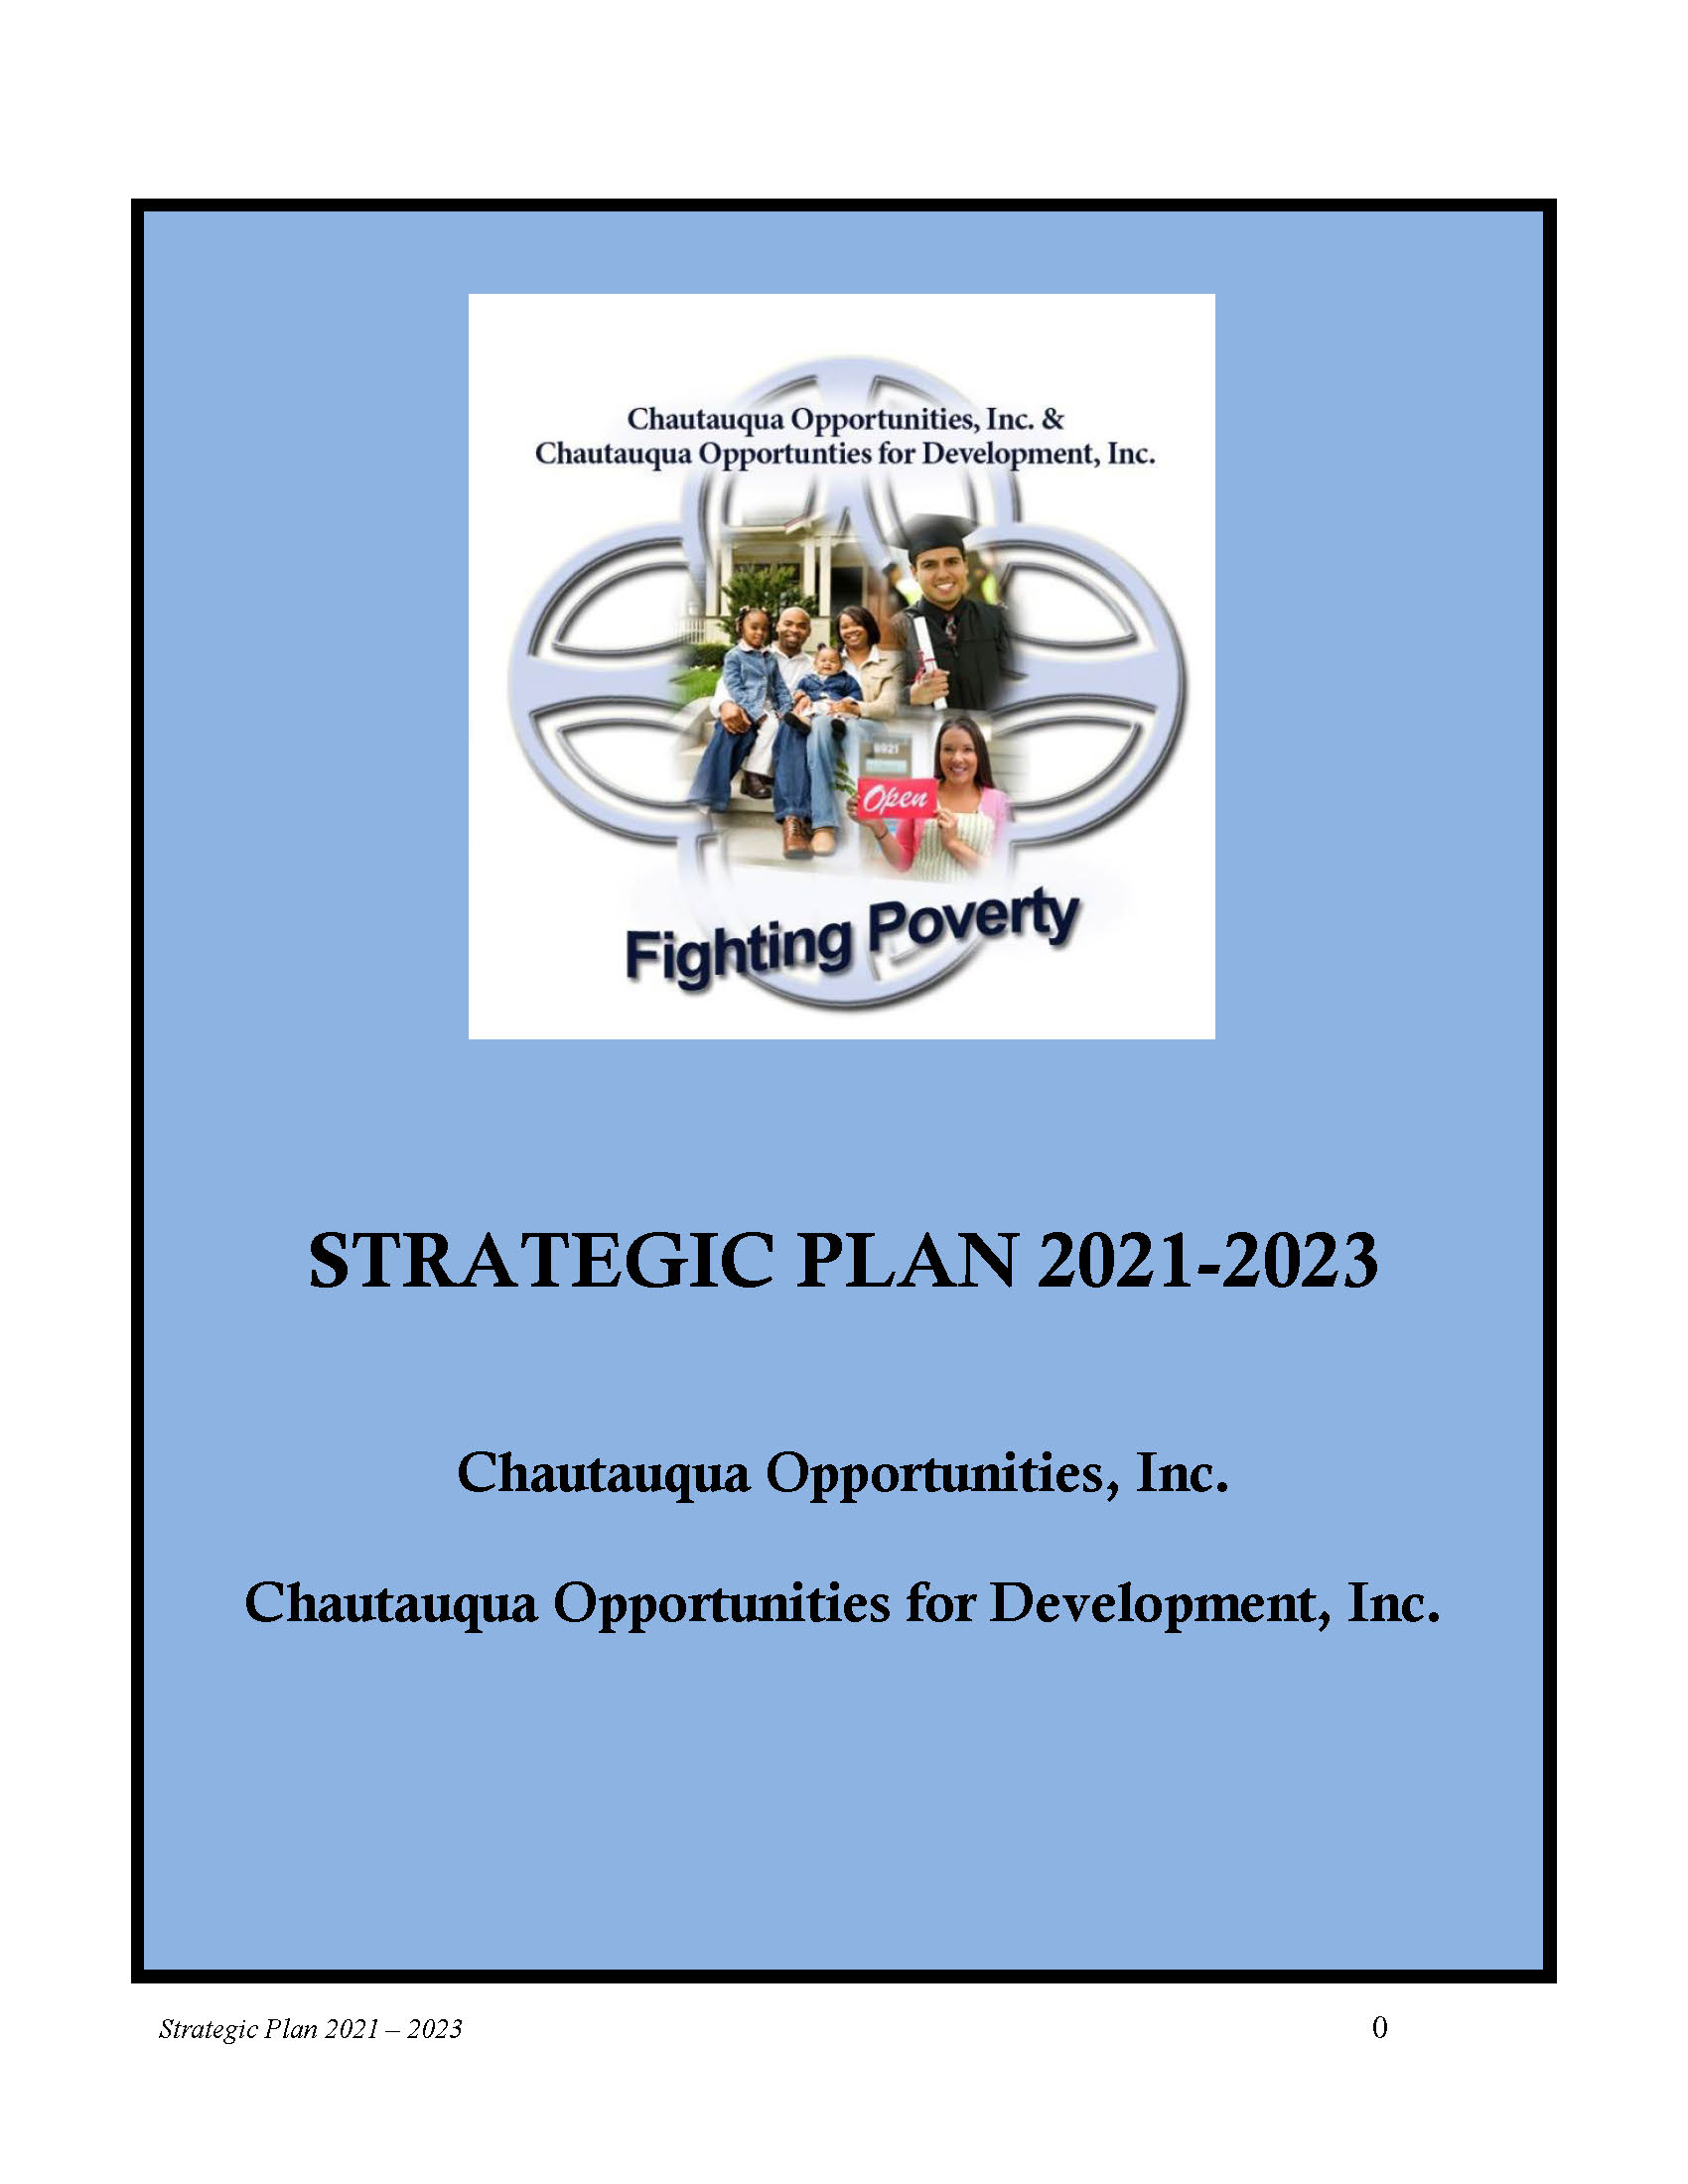 Strategic Plan 2021-2023